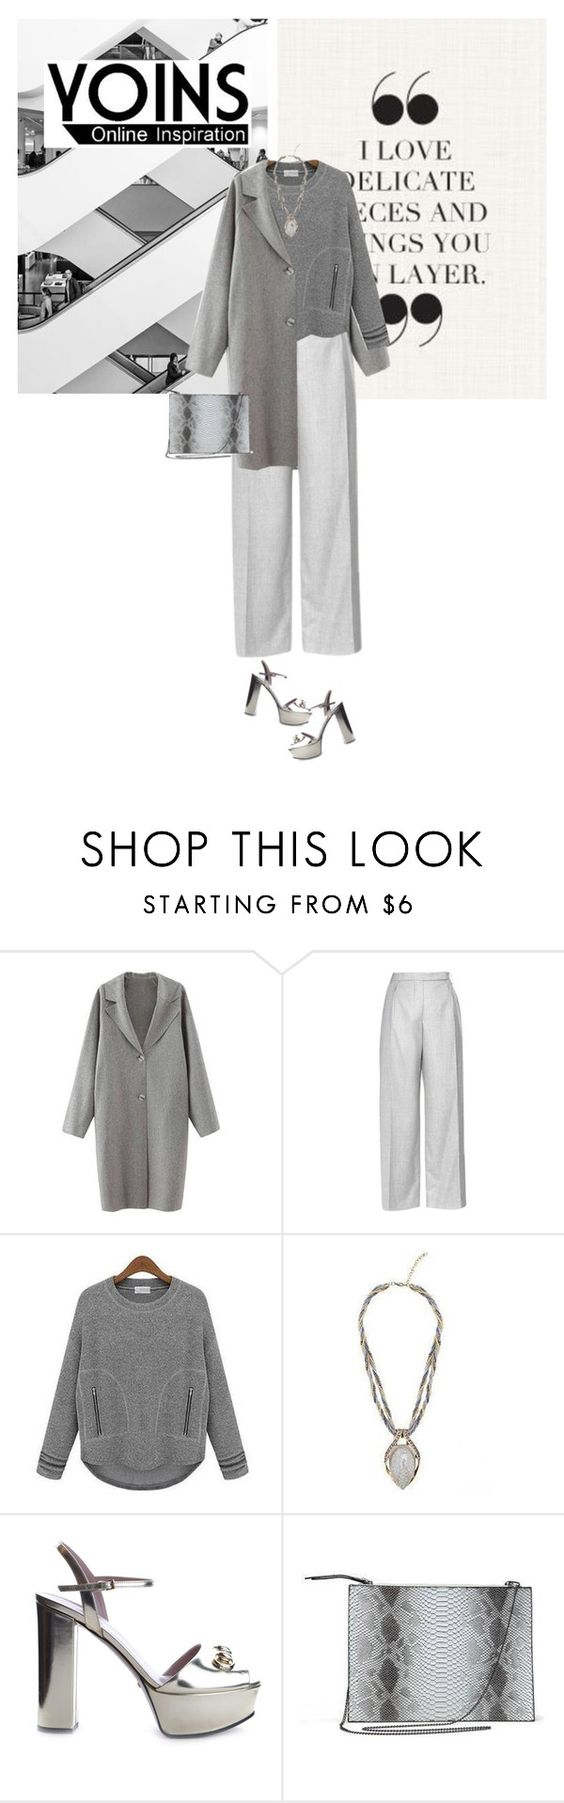 """Untitled #588"" by tamara-40 ❤ liked on Polyvore featuring Carven, Gucci, fashionset, yoins and yoinscollection"